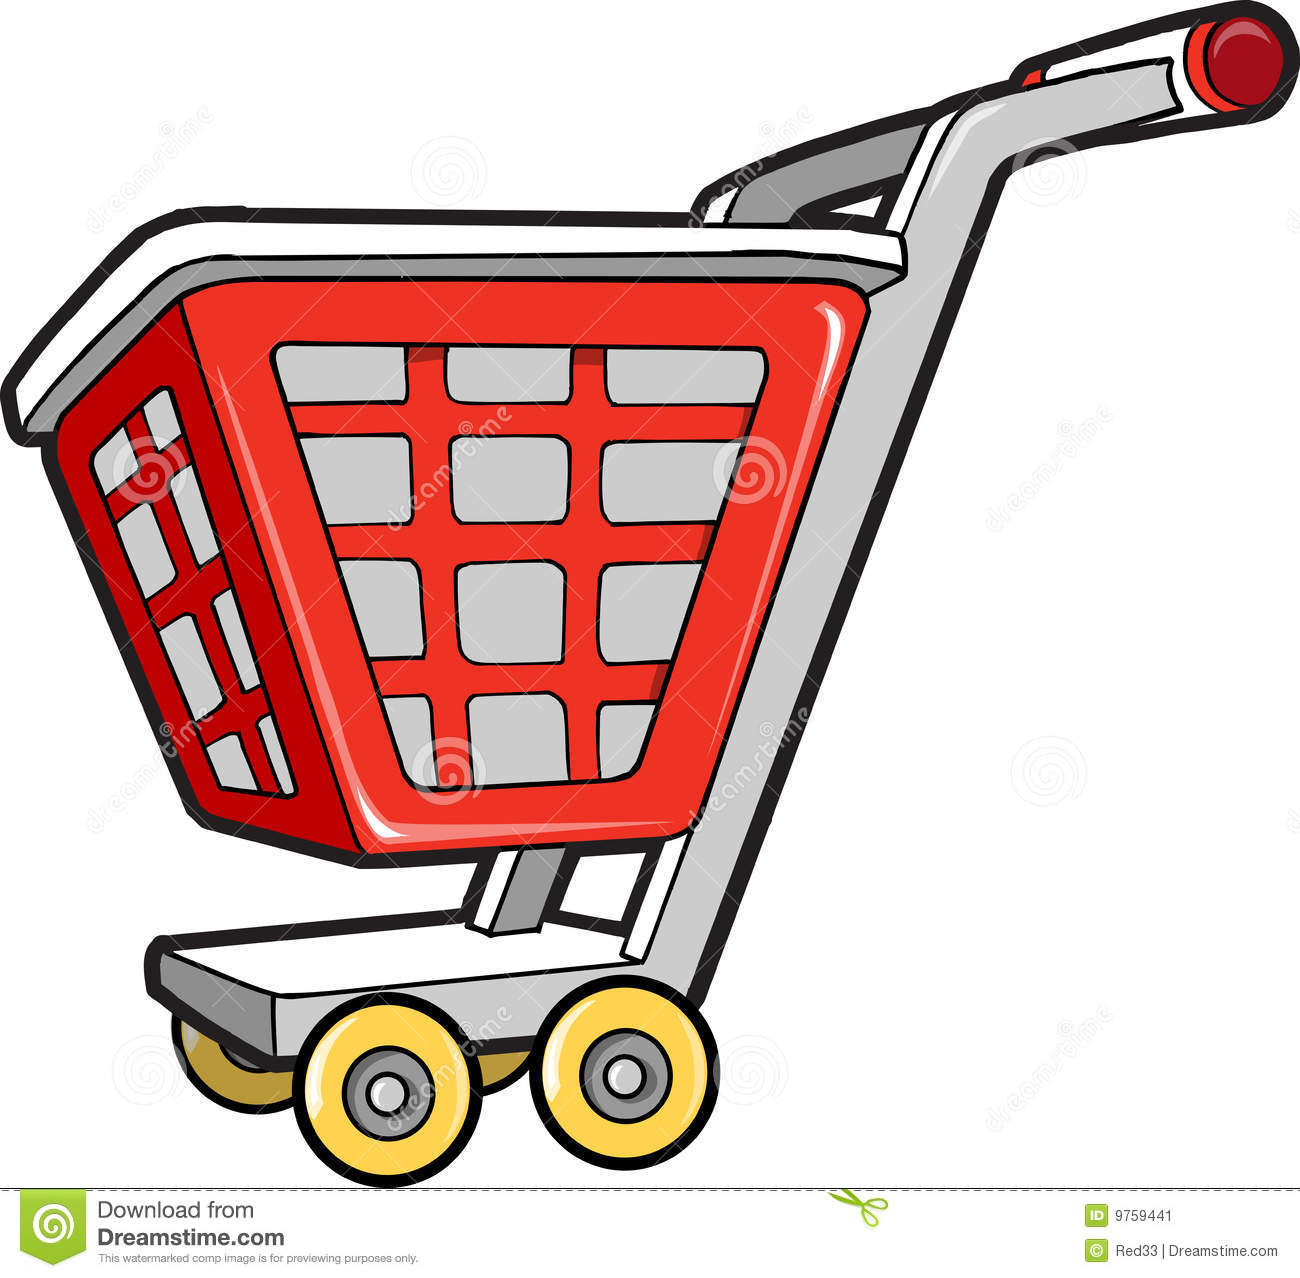 Vector Clipart Shopping Basket : Ping cart vector illustration stock image